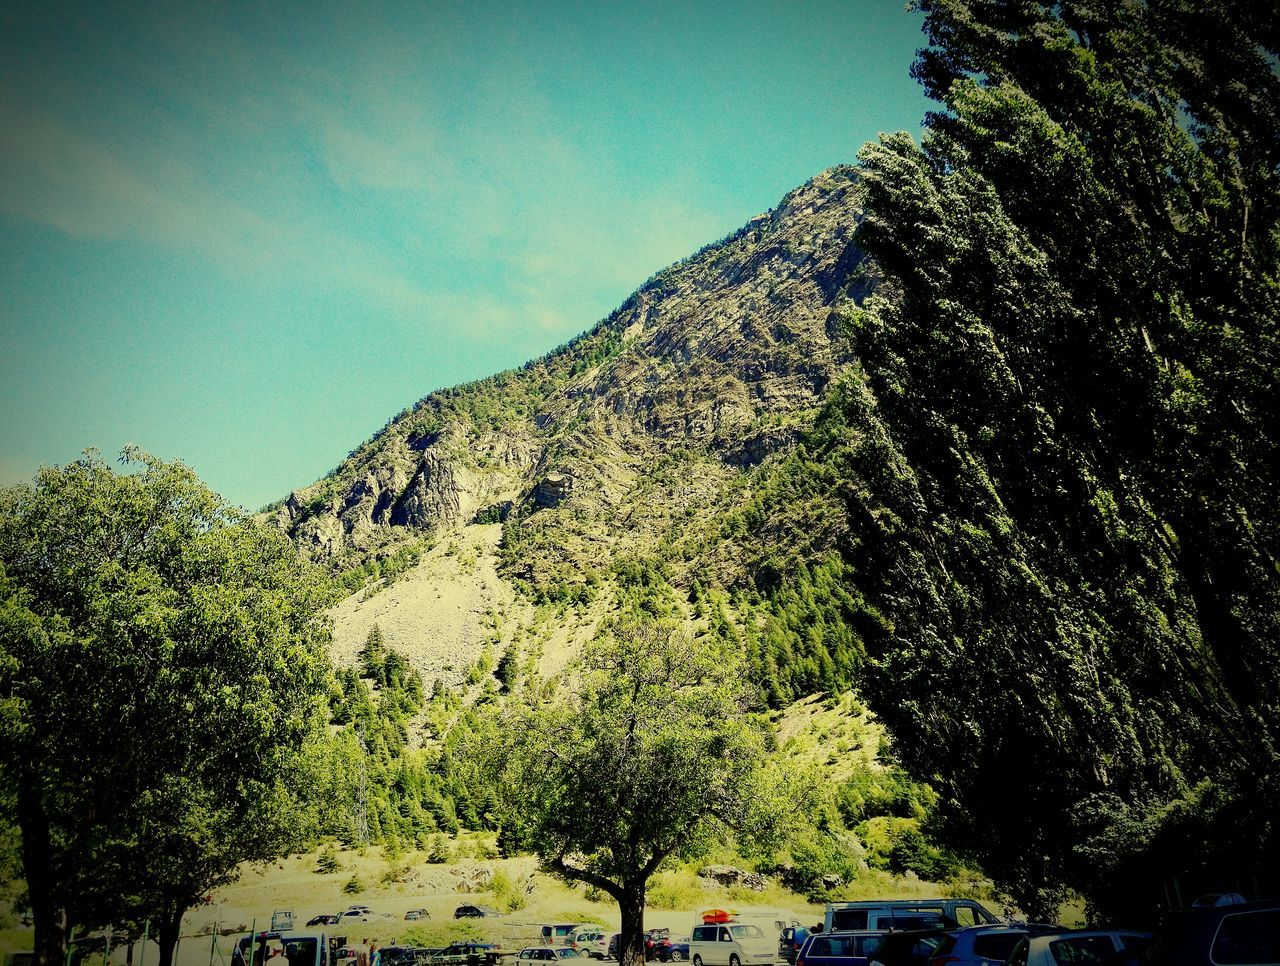 tree, mountain, nature, day, outdoors, beauty in nature, no people, clear sky, growth, scenics, sky